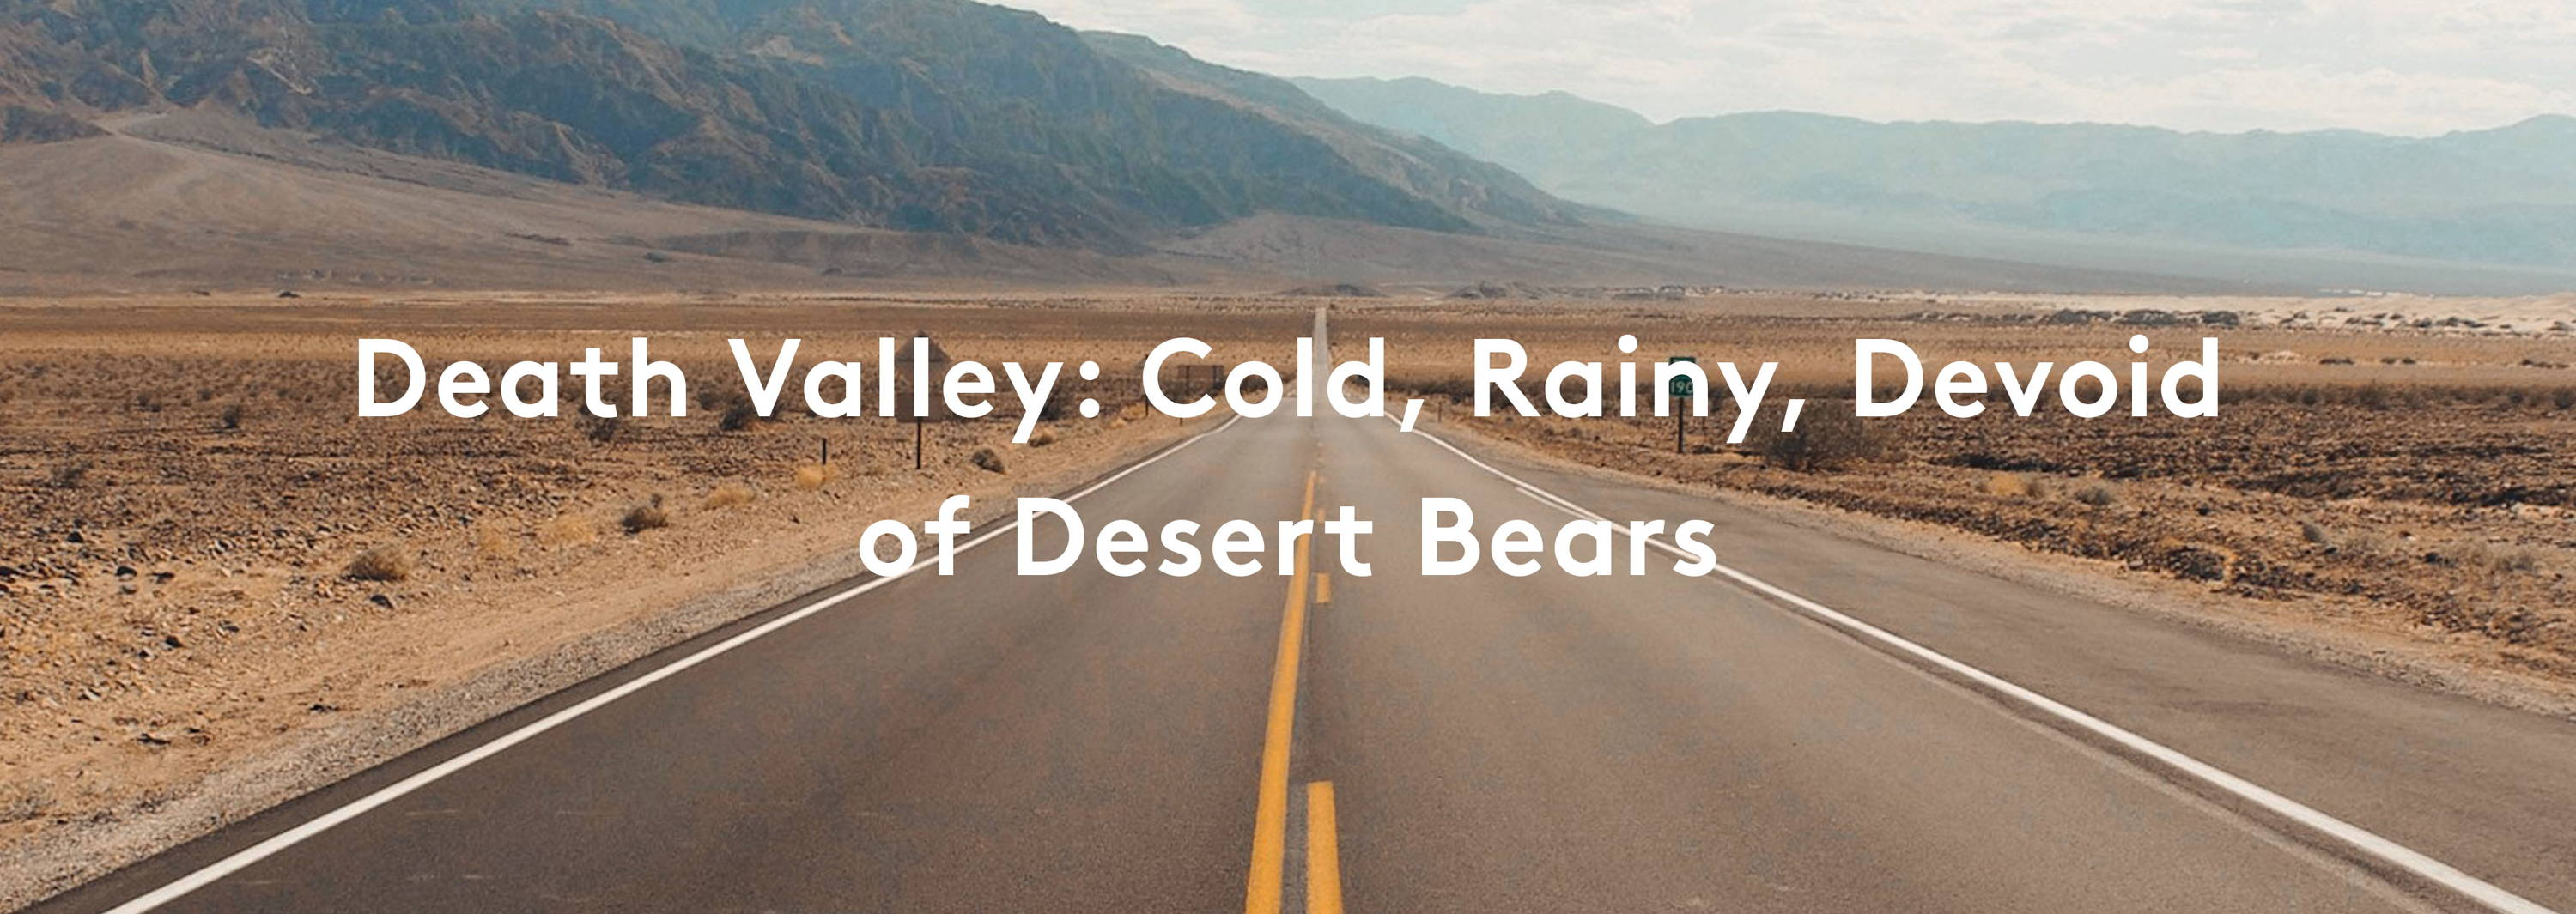 Death Valley: Cold, Rainy, Devoid of Desert Bears